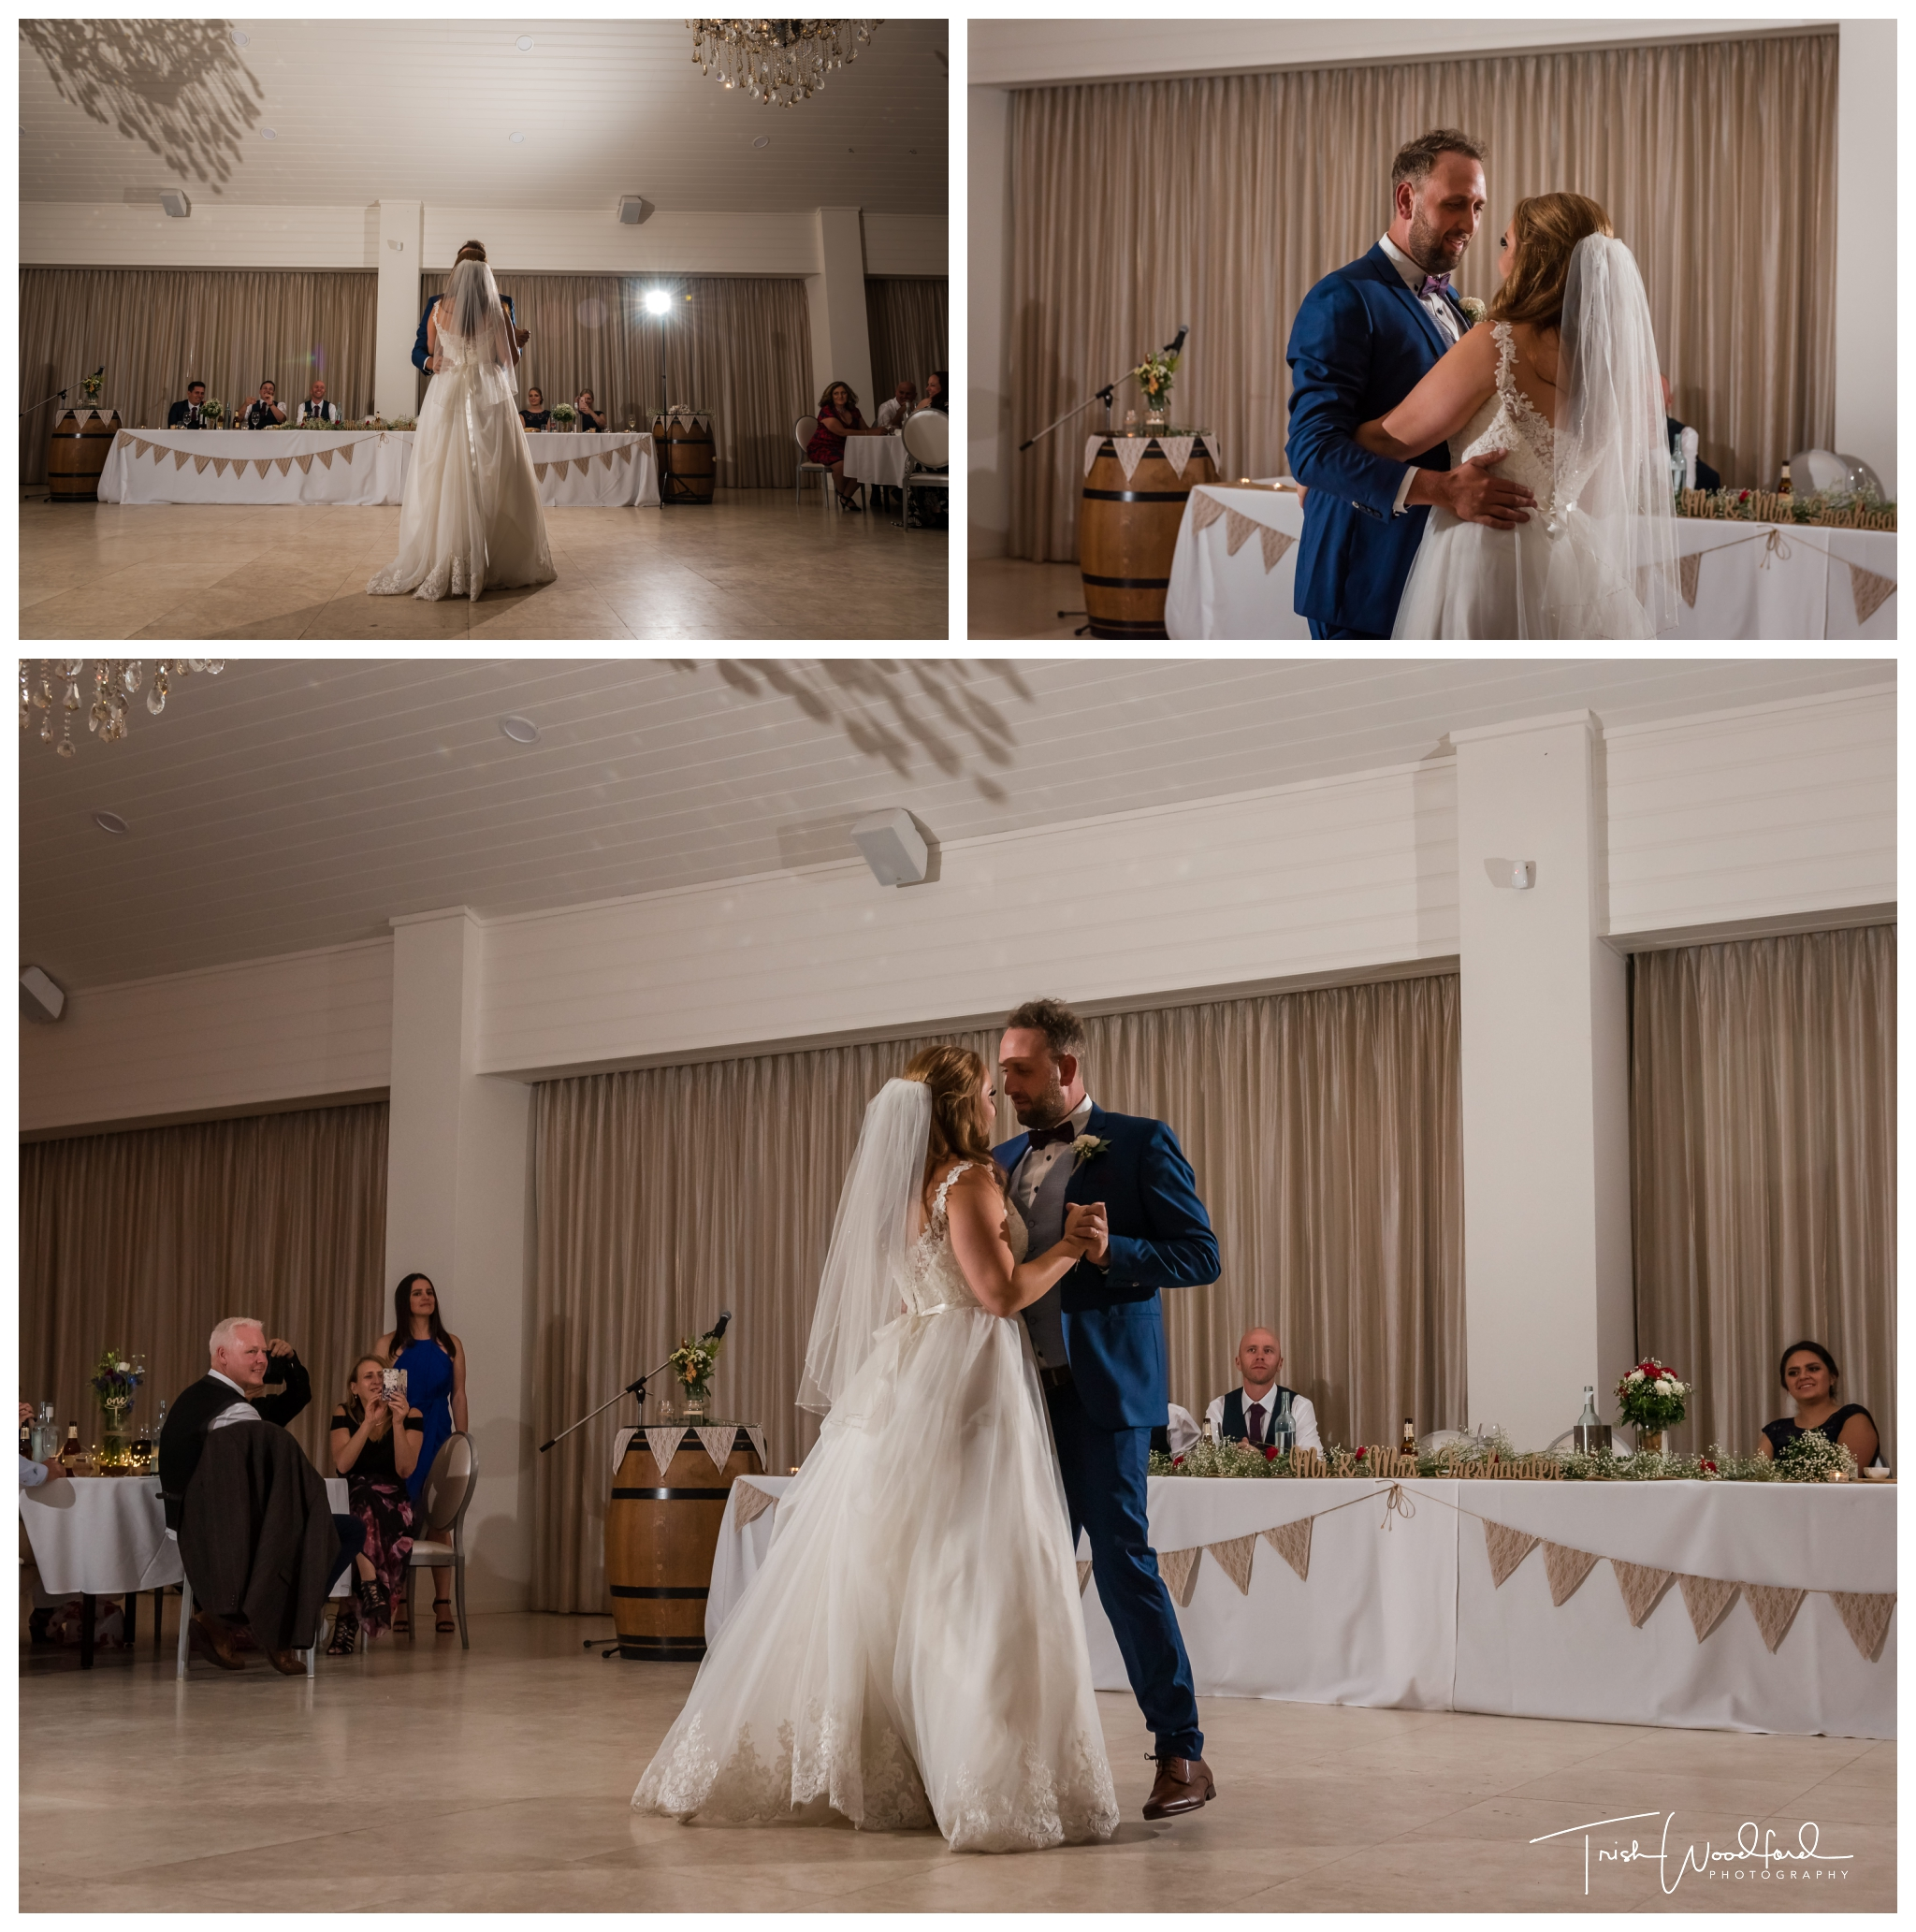 Wedding Dance Aravina Estate Reception